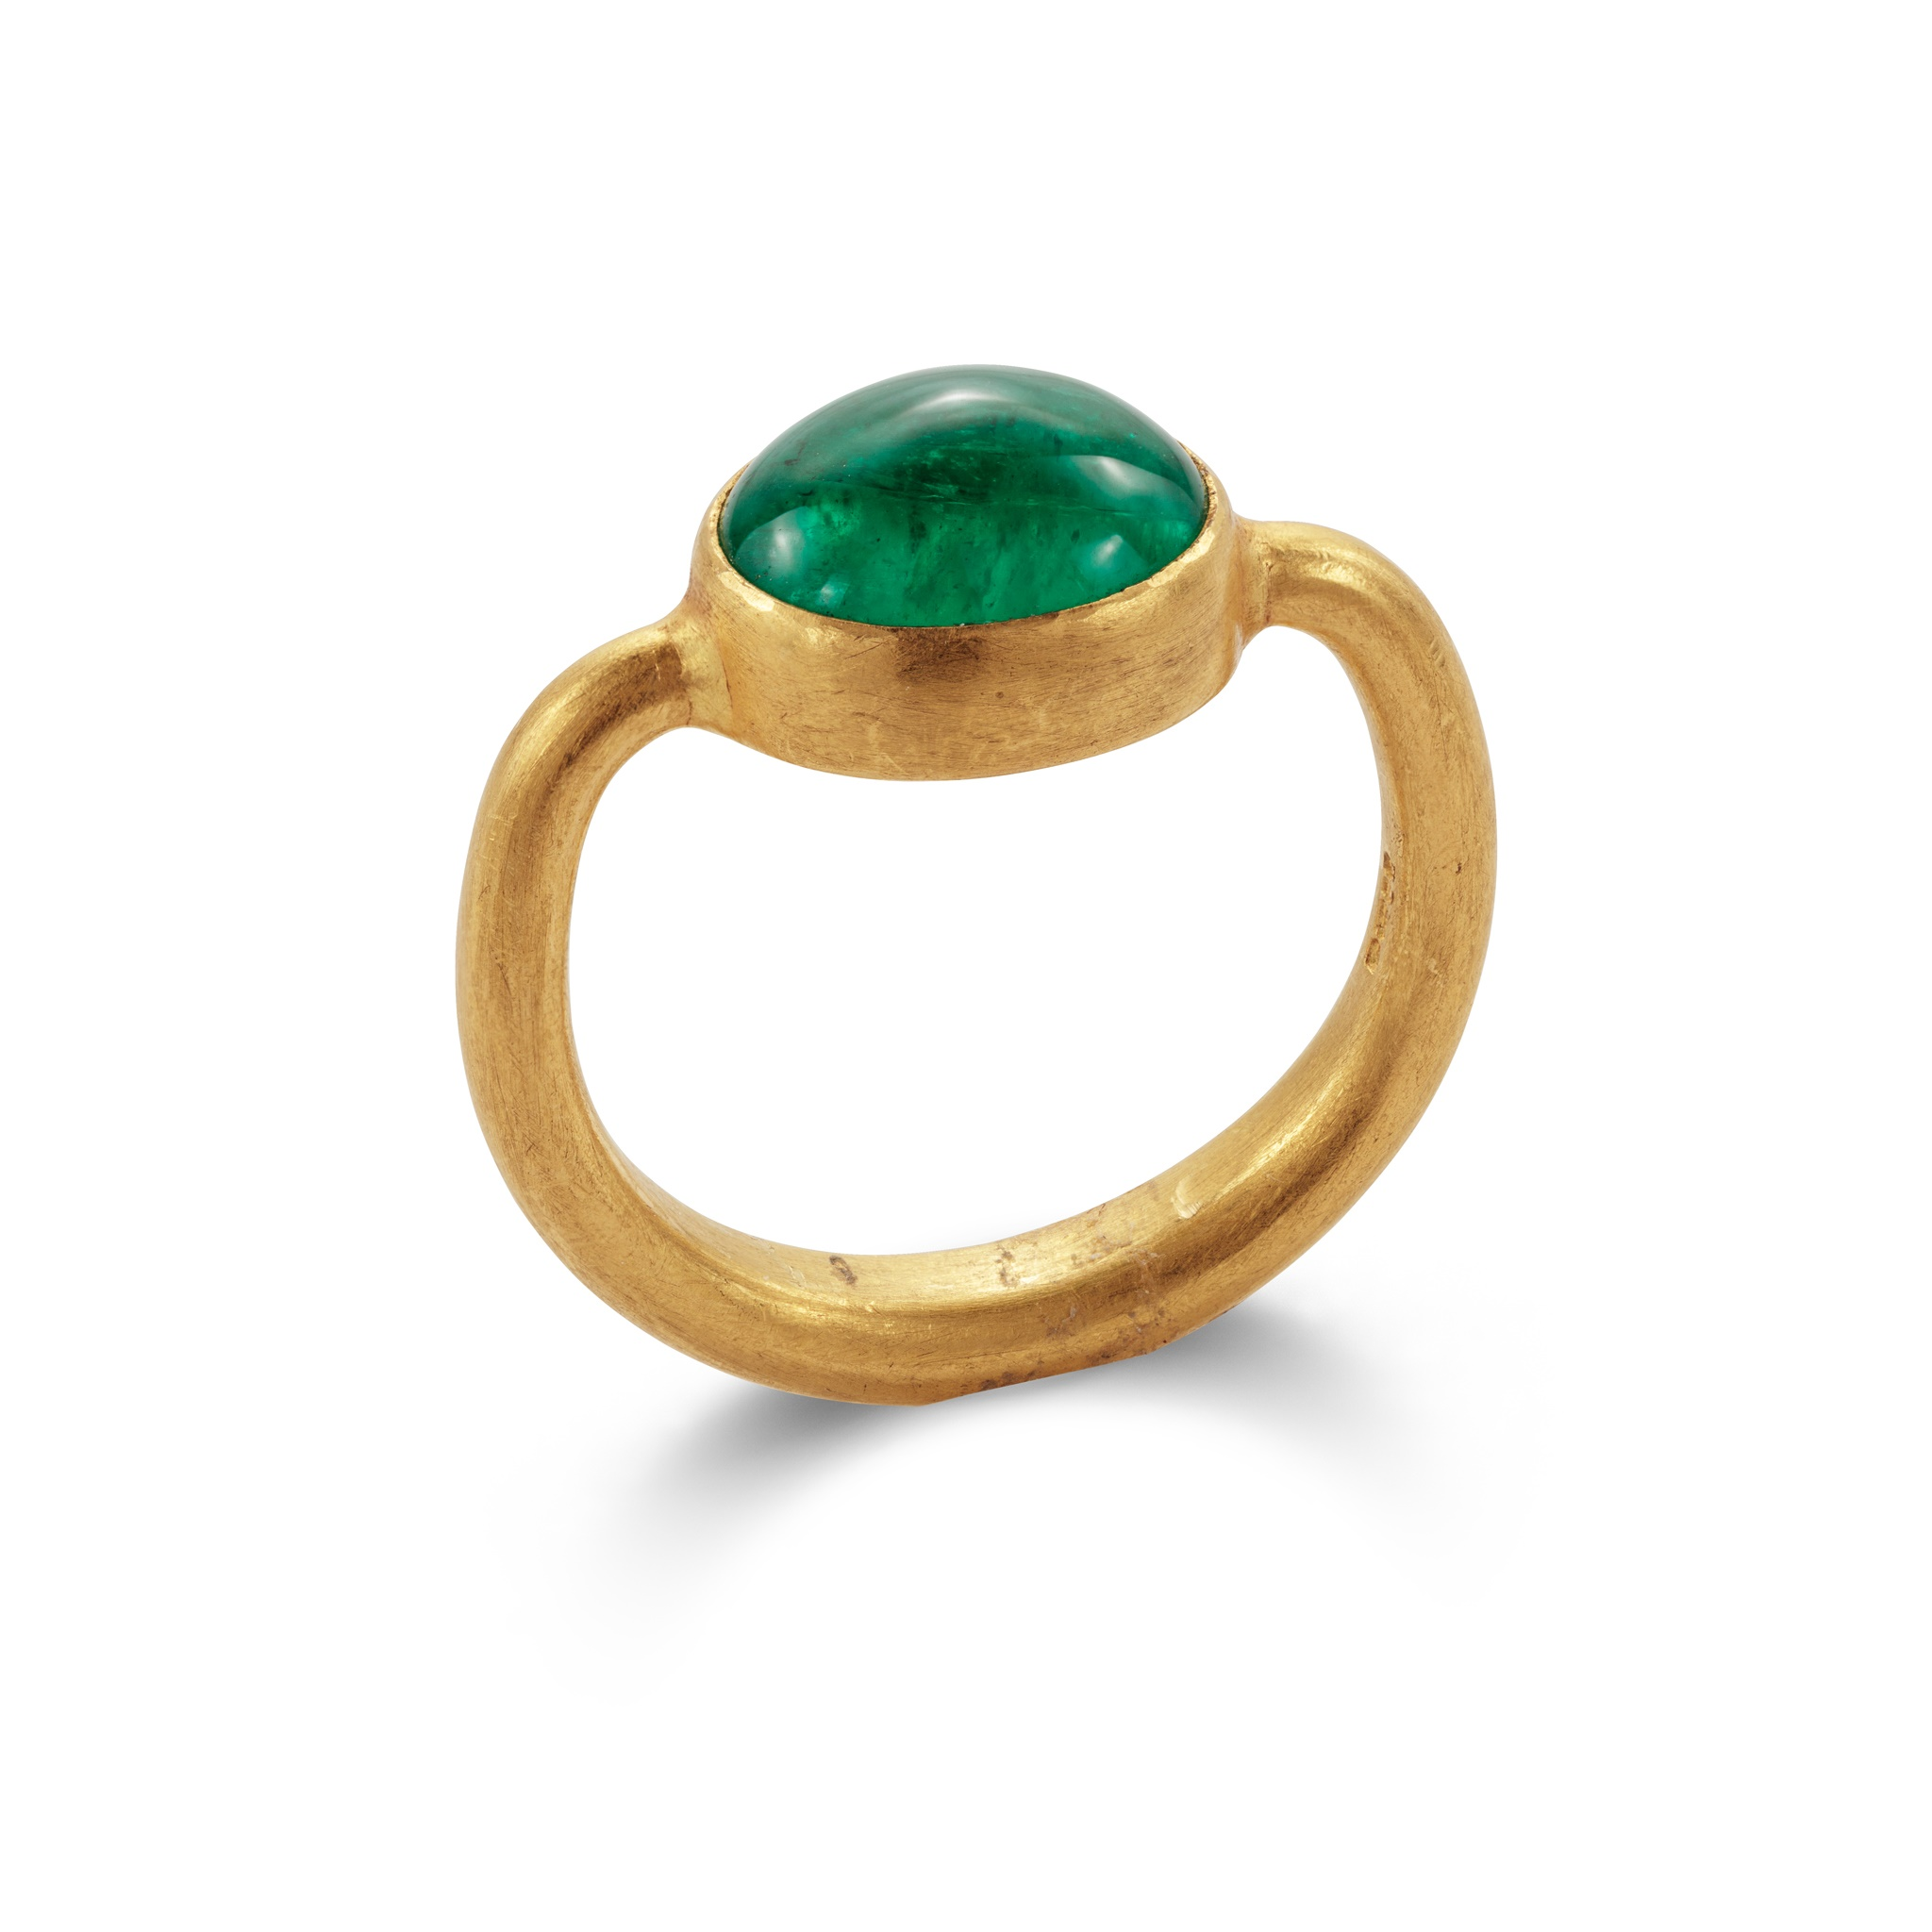 An emerald single-stone ring The oval cabochon emerald collet-set in a 22ct gold mount and hoop of